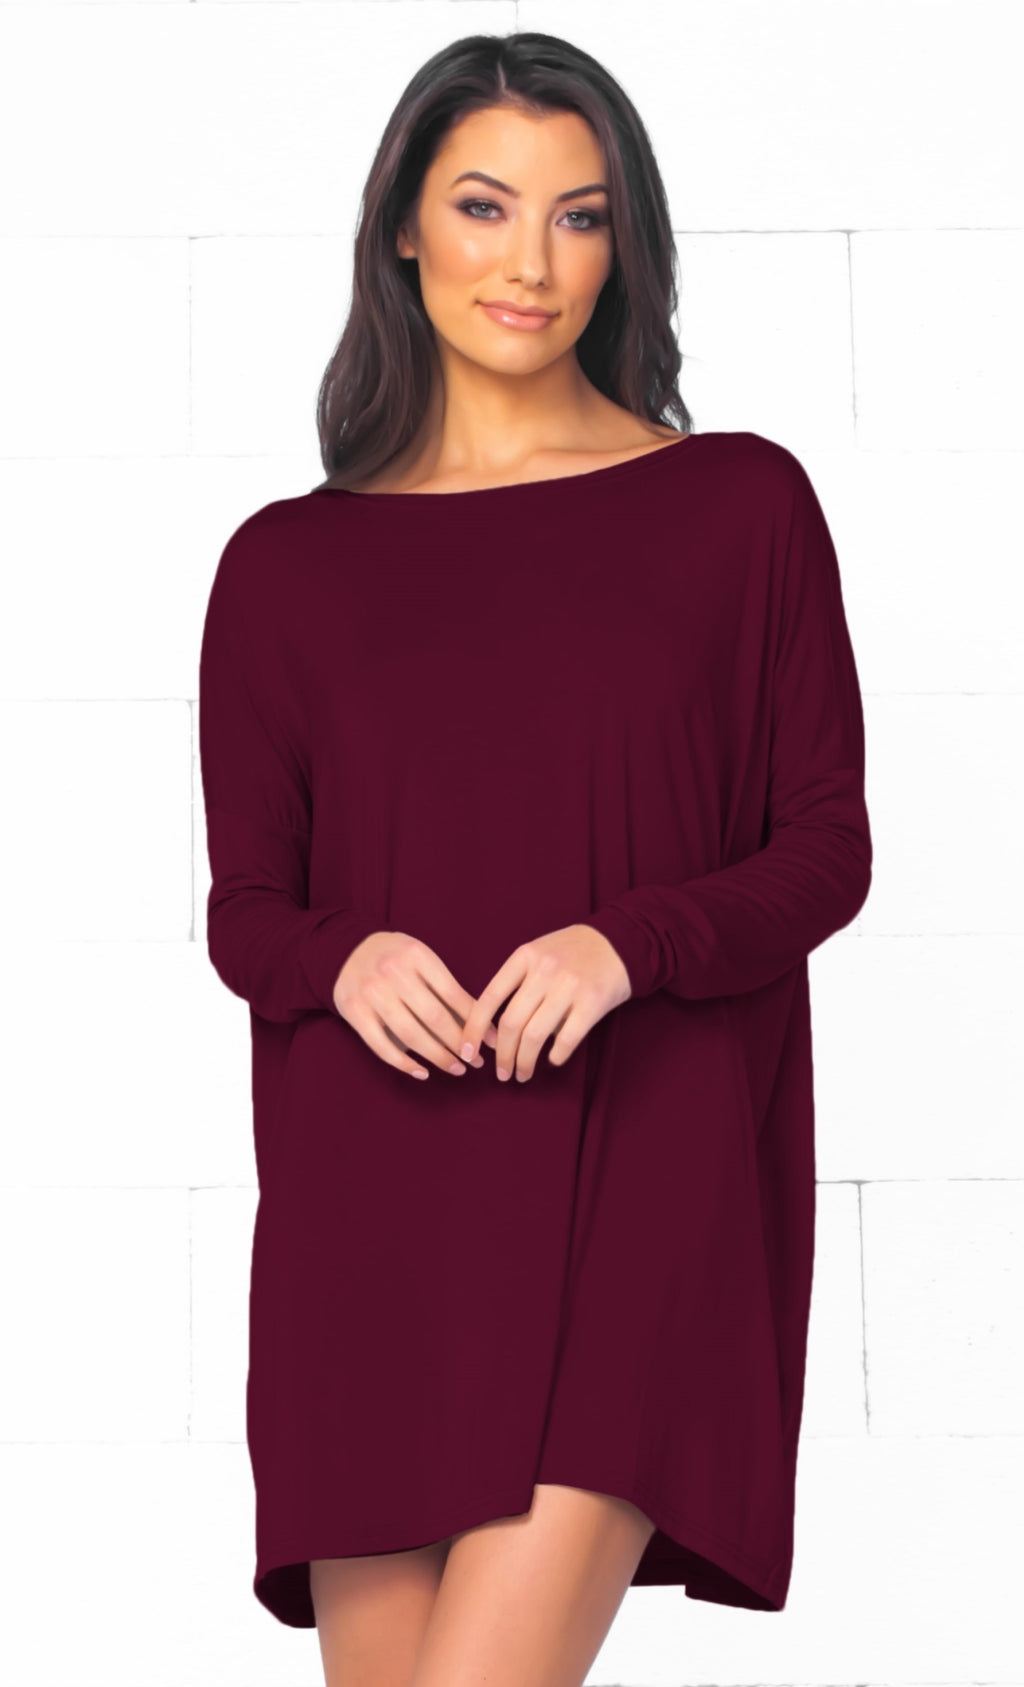 Piko 1988 Wine Burgundy Red Long Sleeve Scoop Neck Piko BambooOversized Basic Tunic Tee Shirt Mini Dress